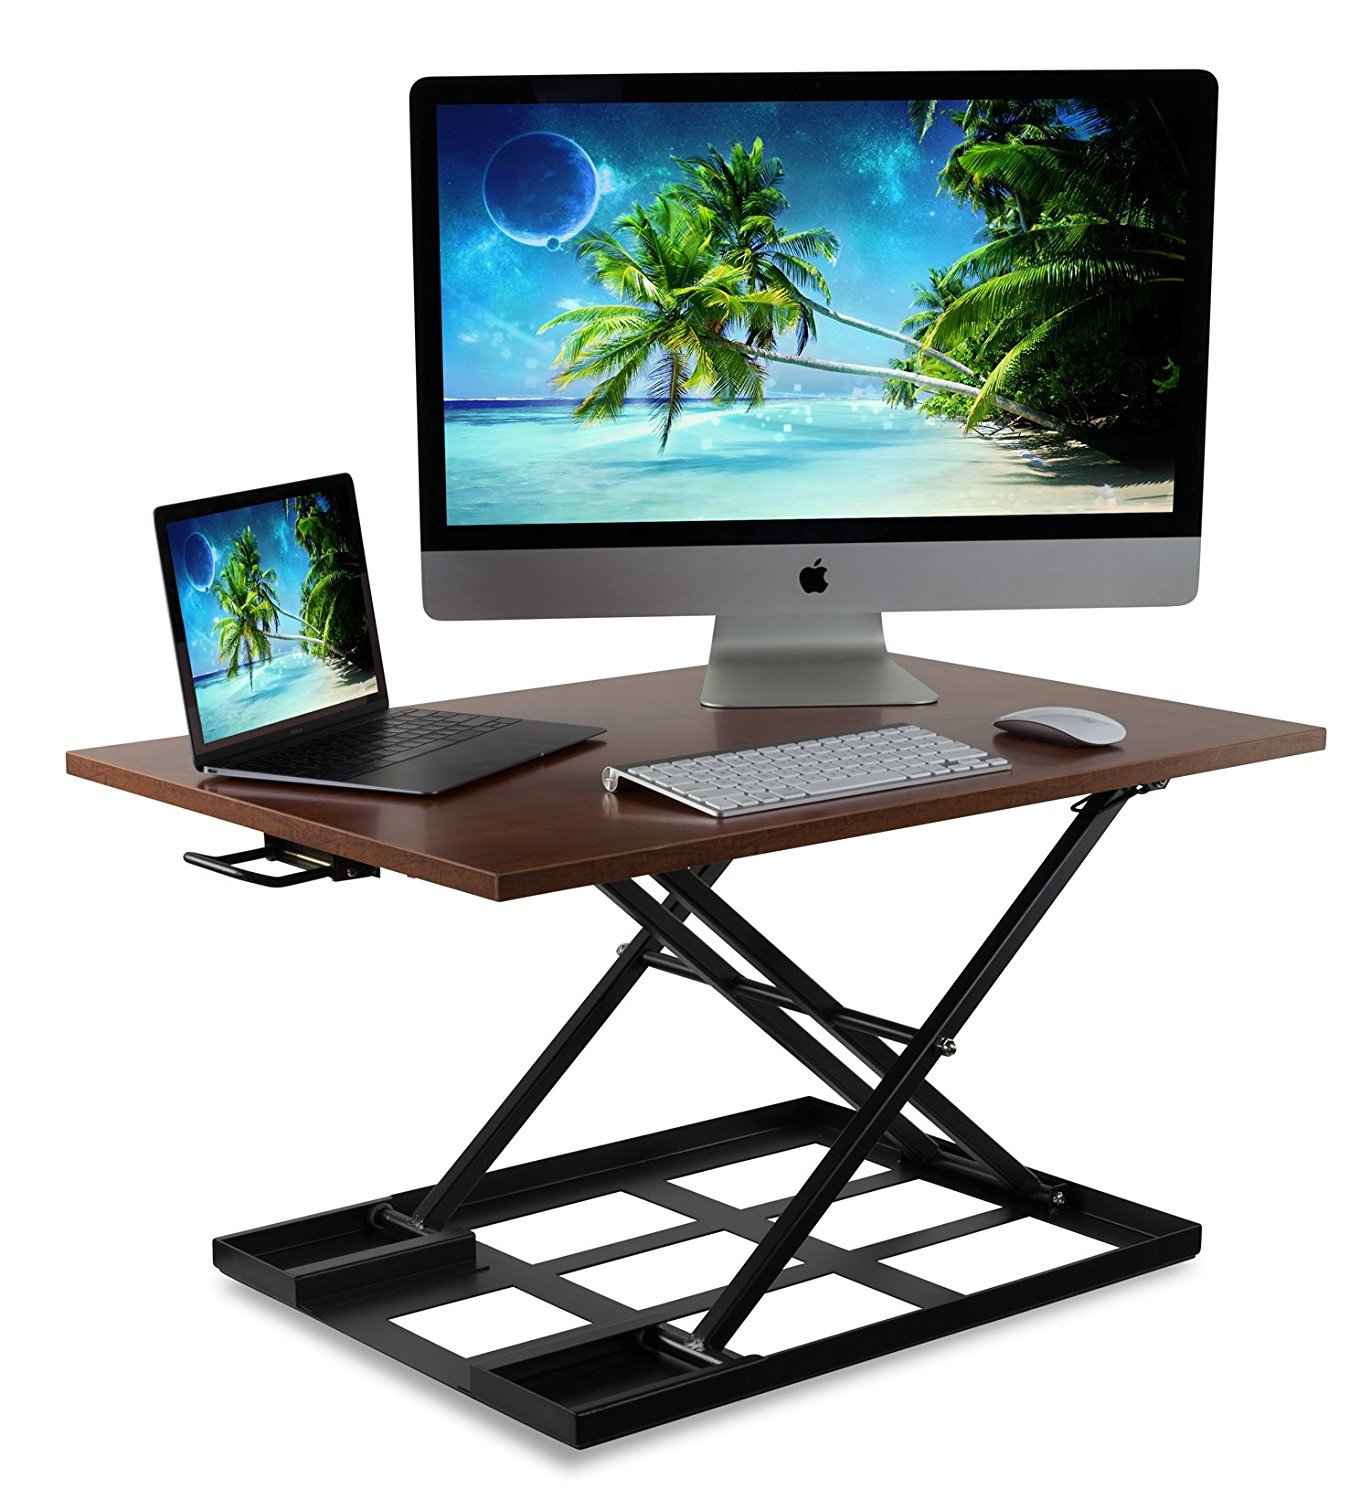 Mount-It! Corner Standing Desk Converter, 48 Wide Adjustable Height Tabletop Sit Stand Up Desk for Cubicles, Removable Spacious Keyboard Tray Platform MI-7958